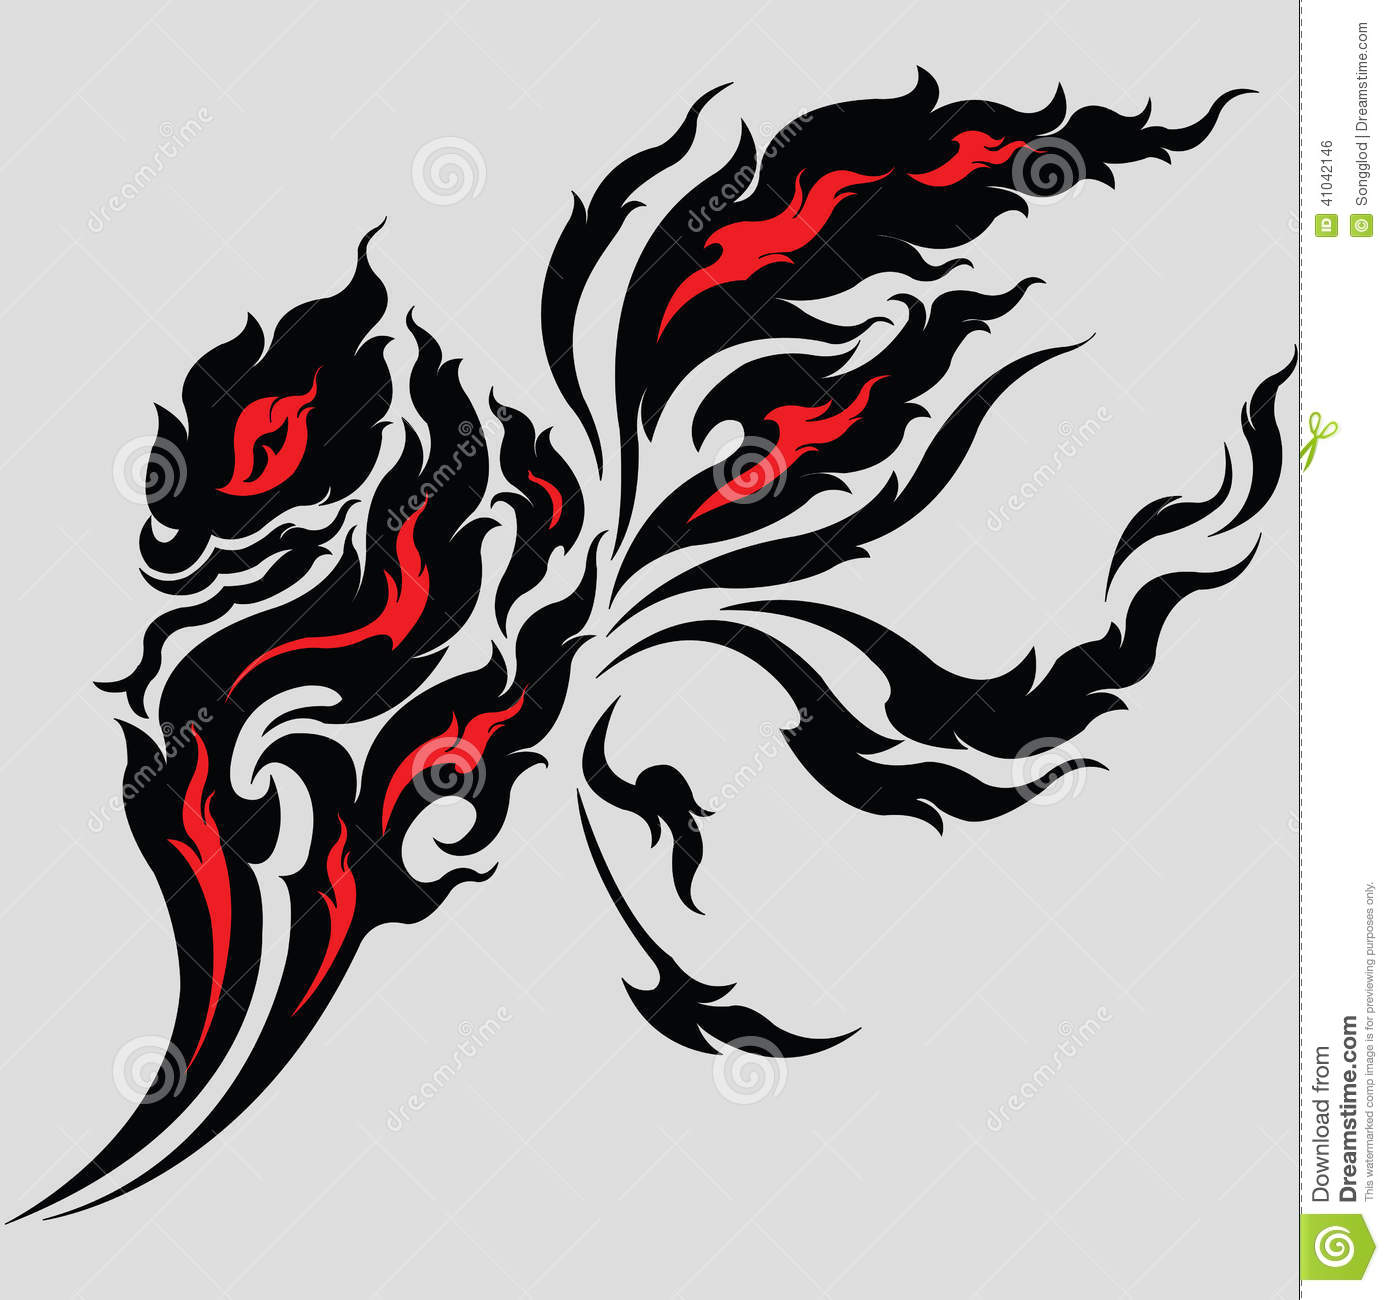 tribal dragon tattoo design stock vector image 41042146. Black Bedroom Furniture Sets. Home Design Ideas